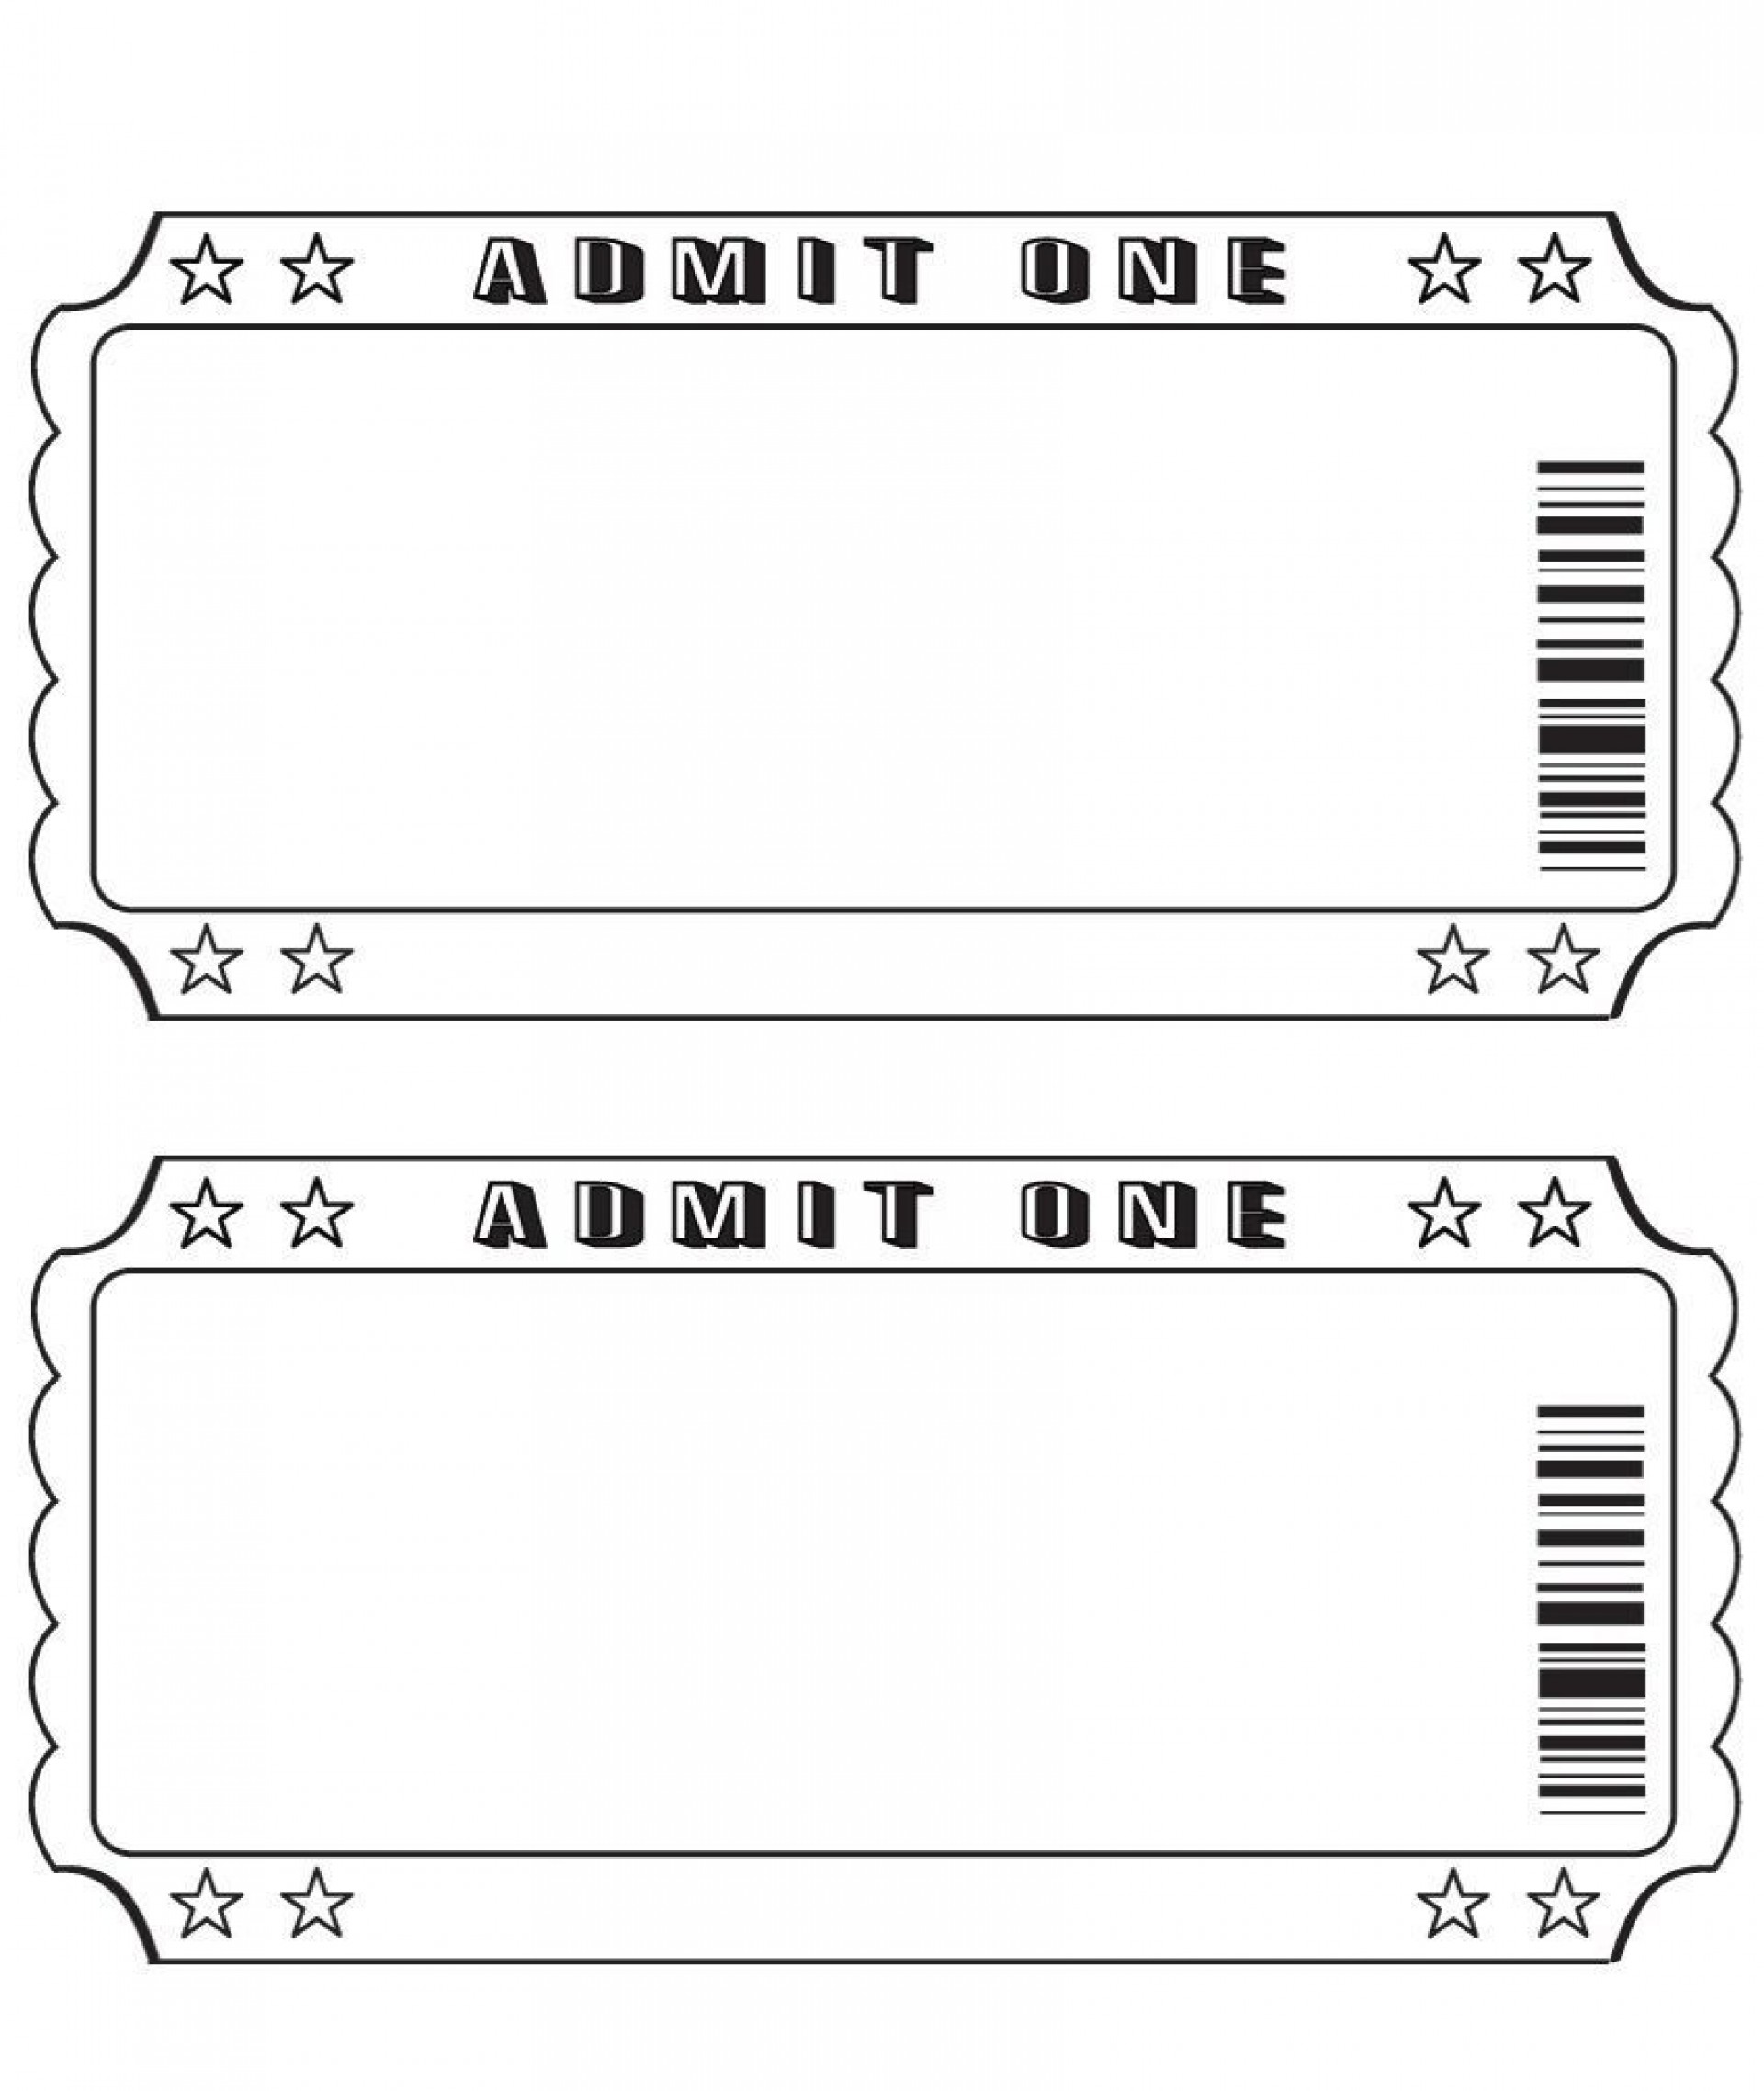 003 Shocking Free Printable Ticket Template Highest Quality  Editable Airline Christma For Gift1920